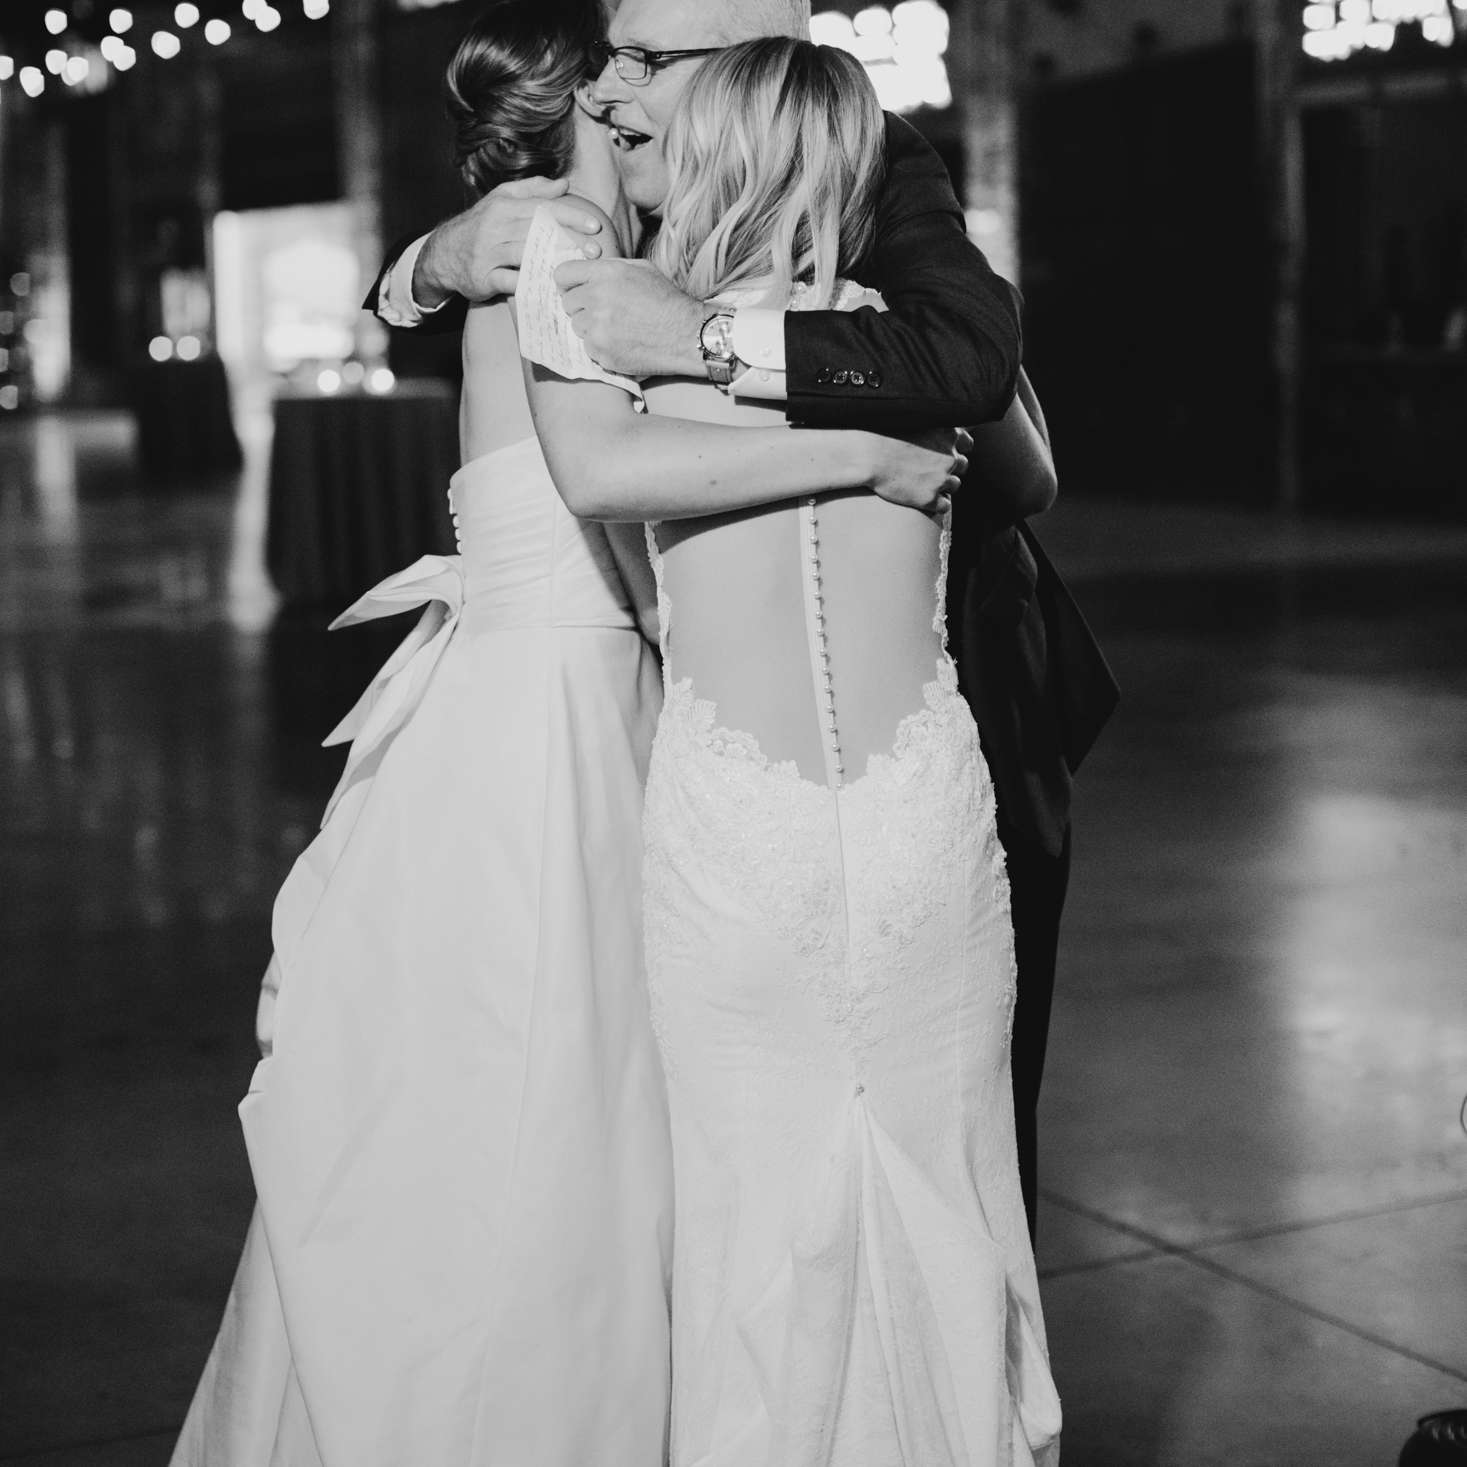 father-daughter dances